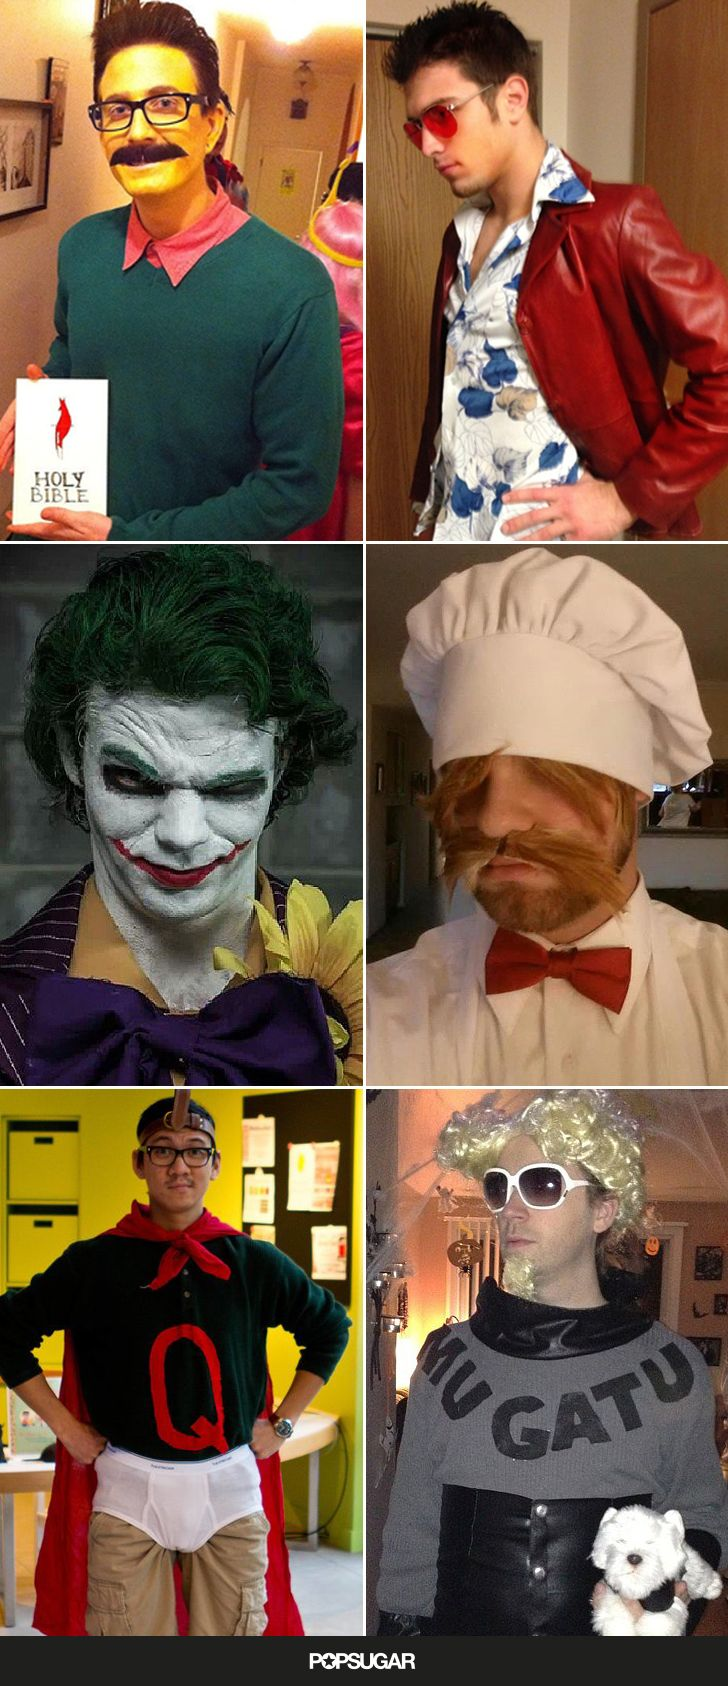 Looking to win the #costumecontest this year?Here are 67 Wildly Creative DIY Costumes For Men!